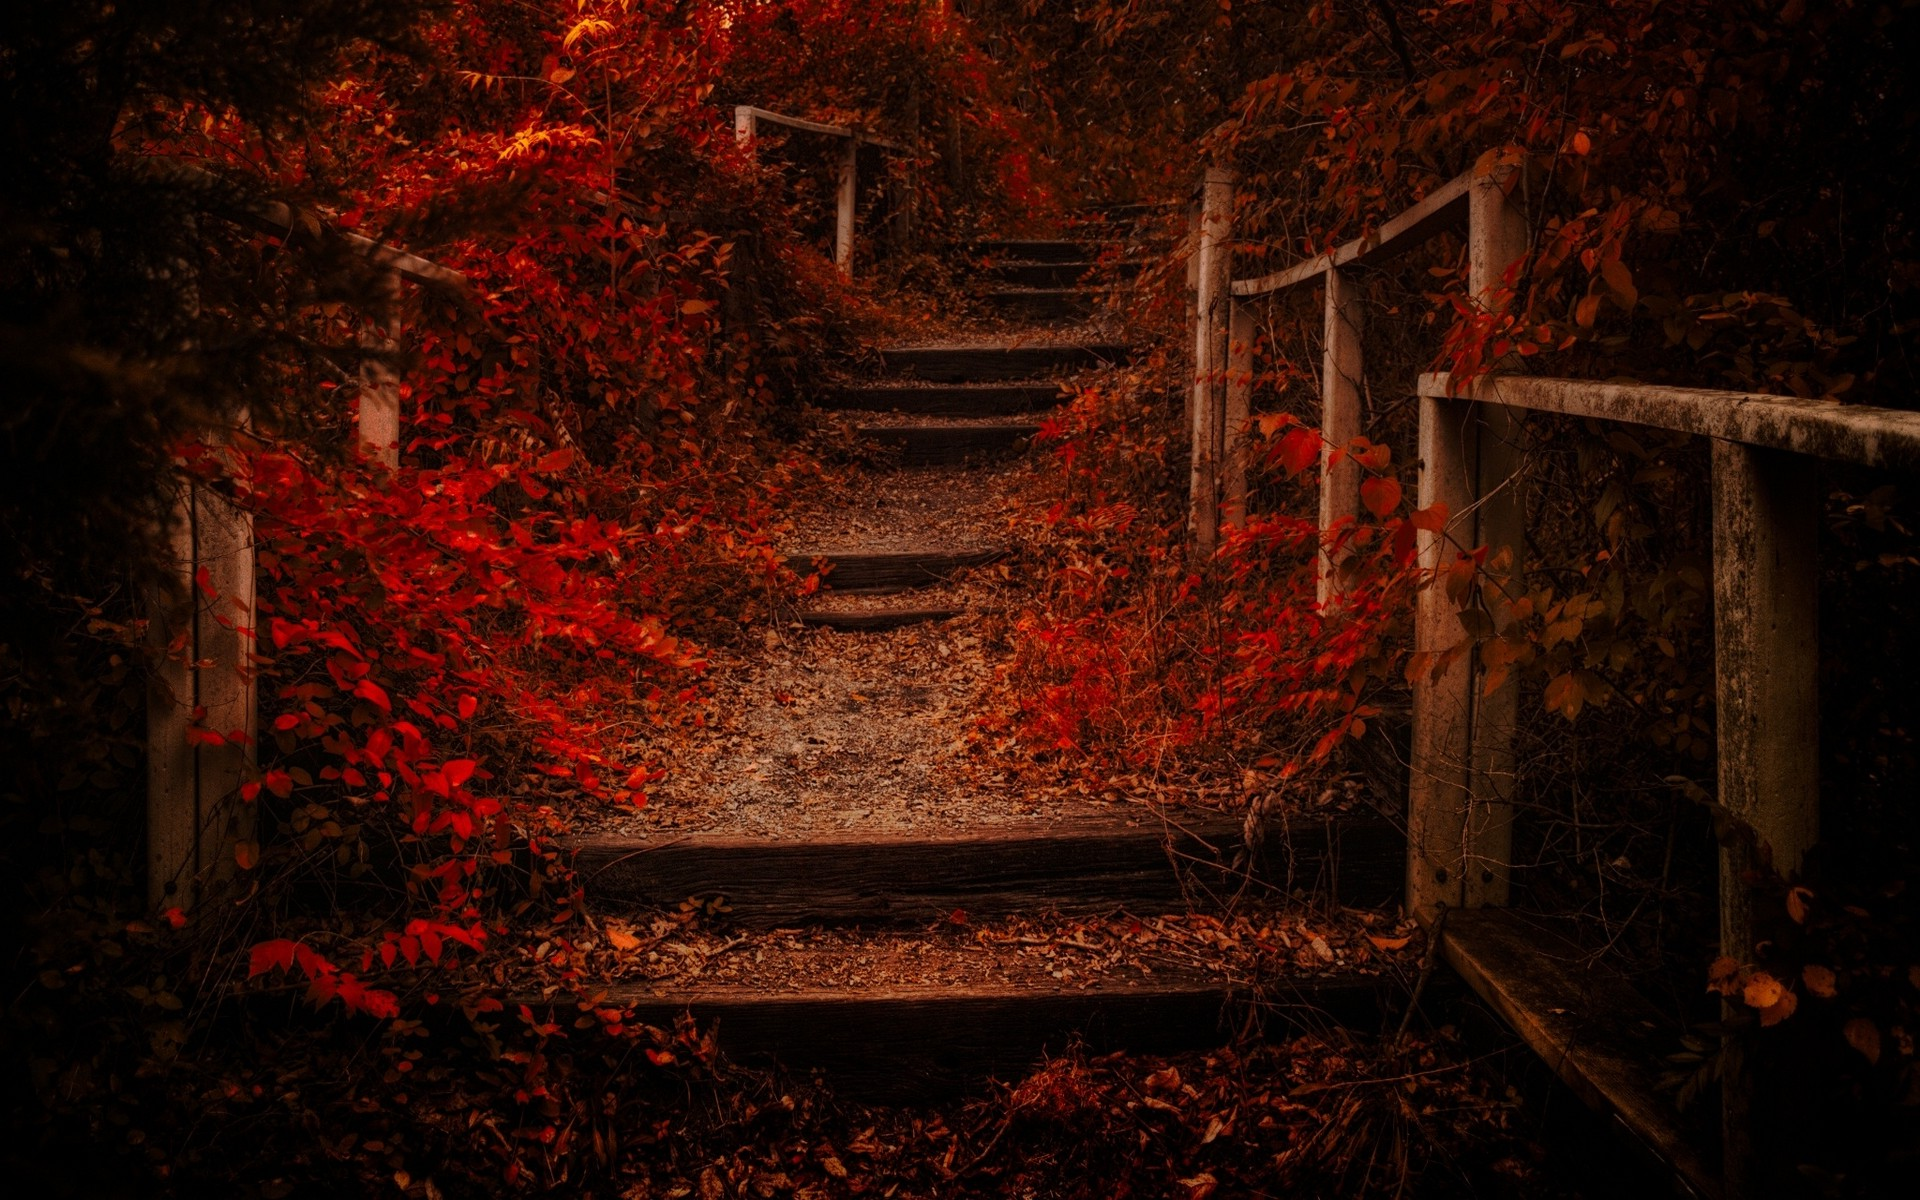 Full Screen Desktop Fall Leaves Wallpaper Nature Landscape Fall Path Leaves Shrubs Red Fence